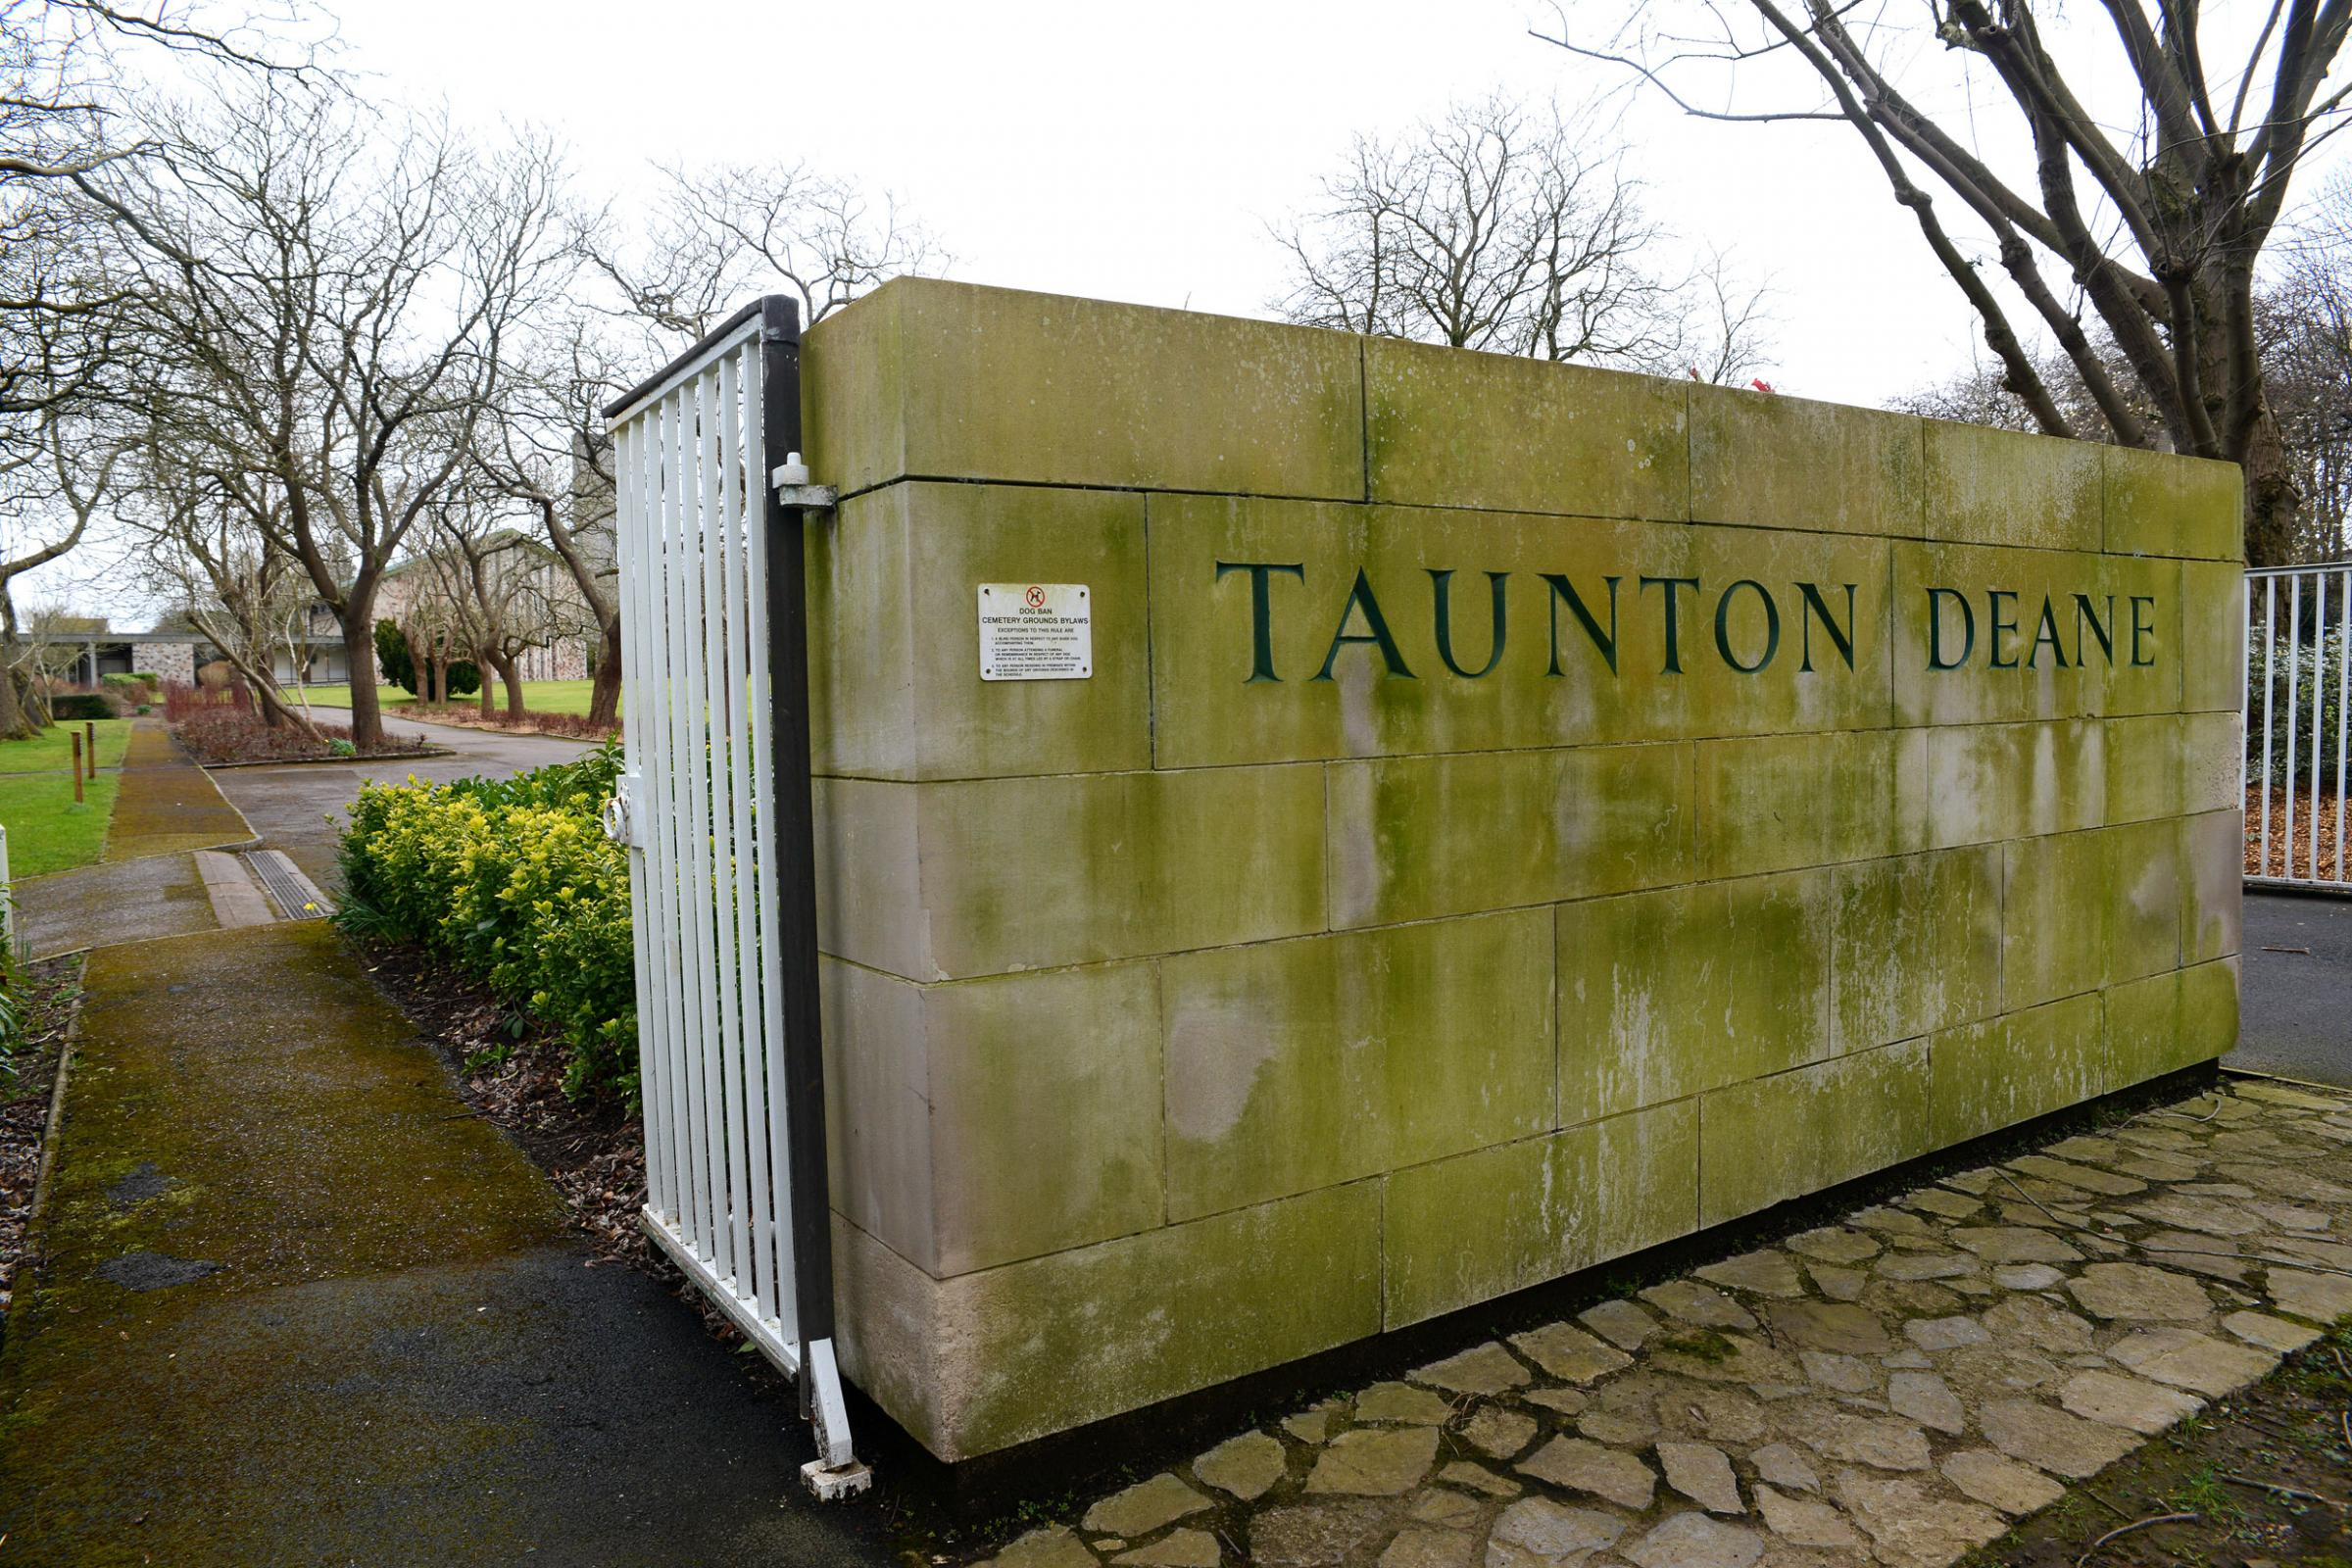 DESTINATION: Taunton Deane Crematorium, in Wellington New Road, Taunton